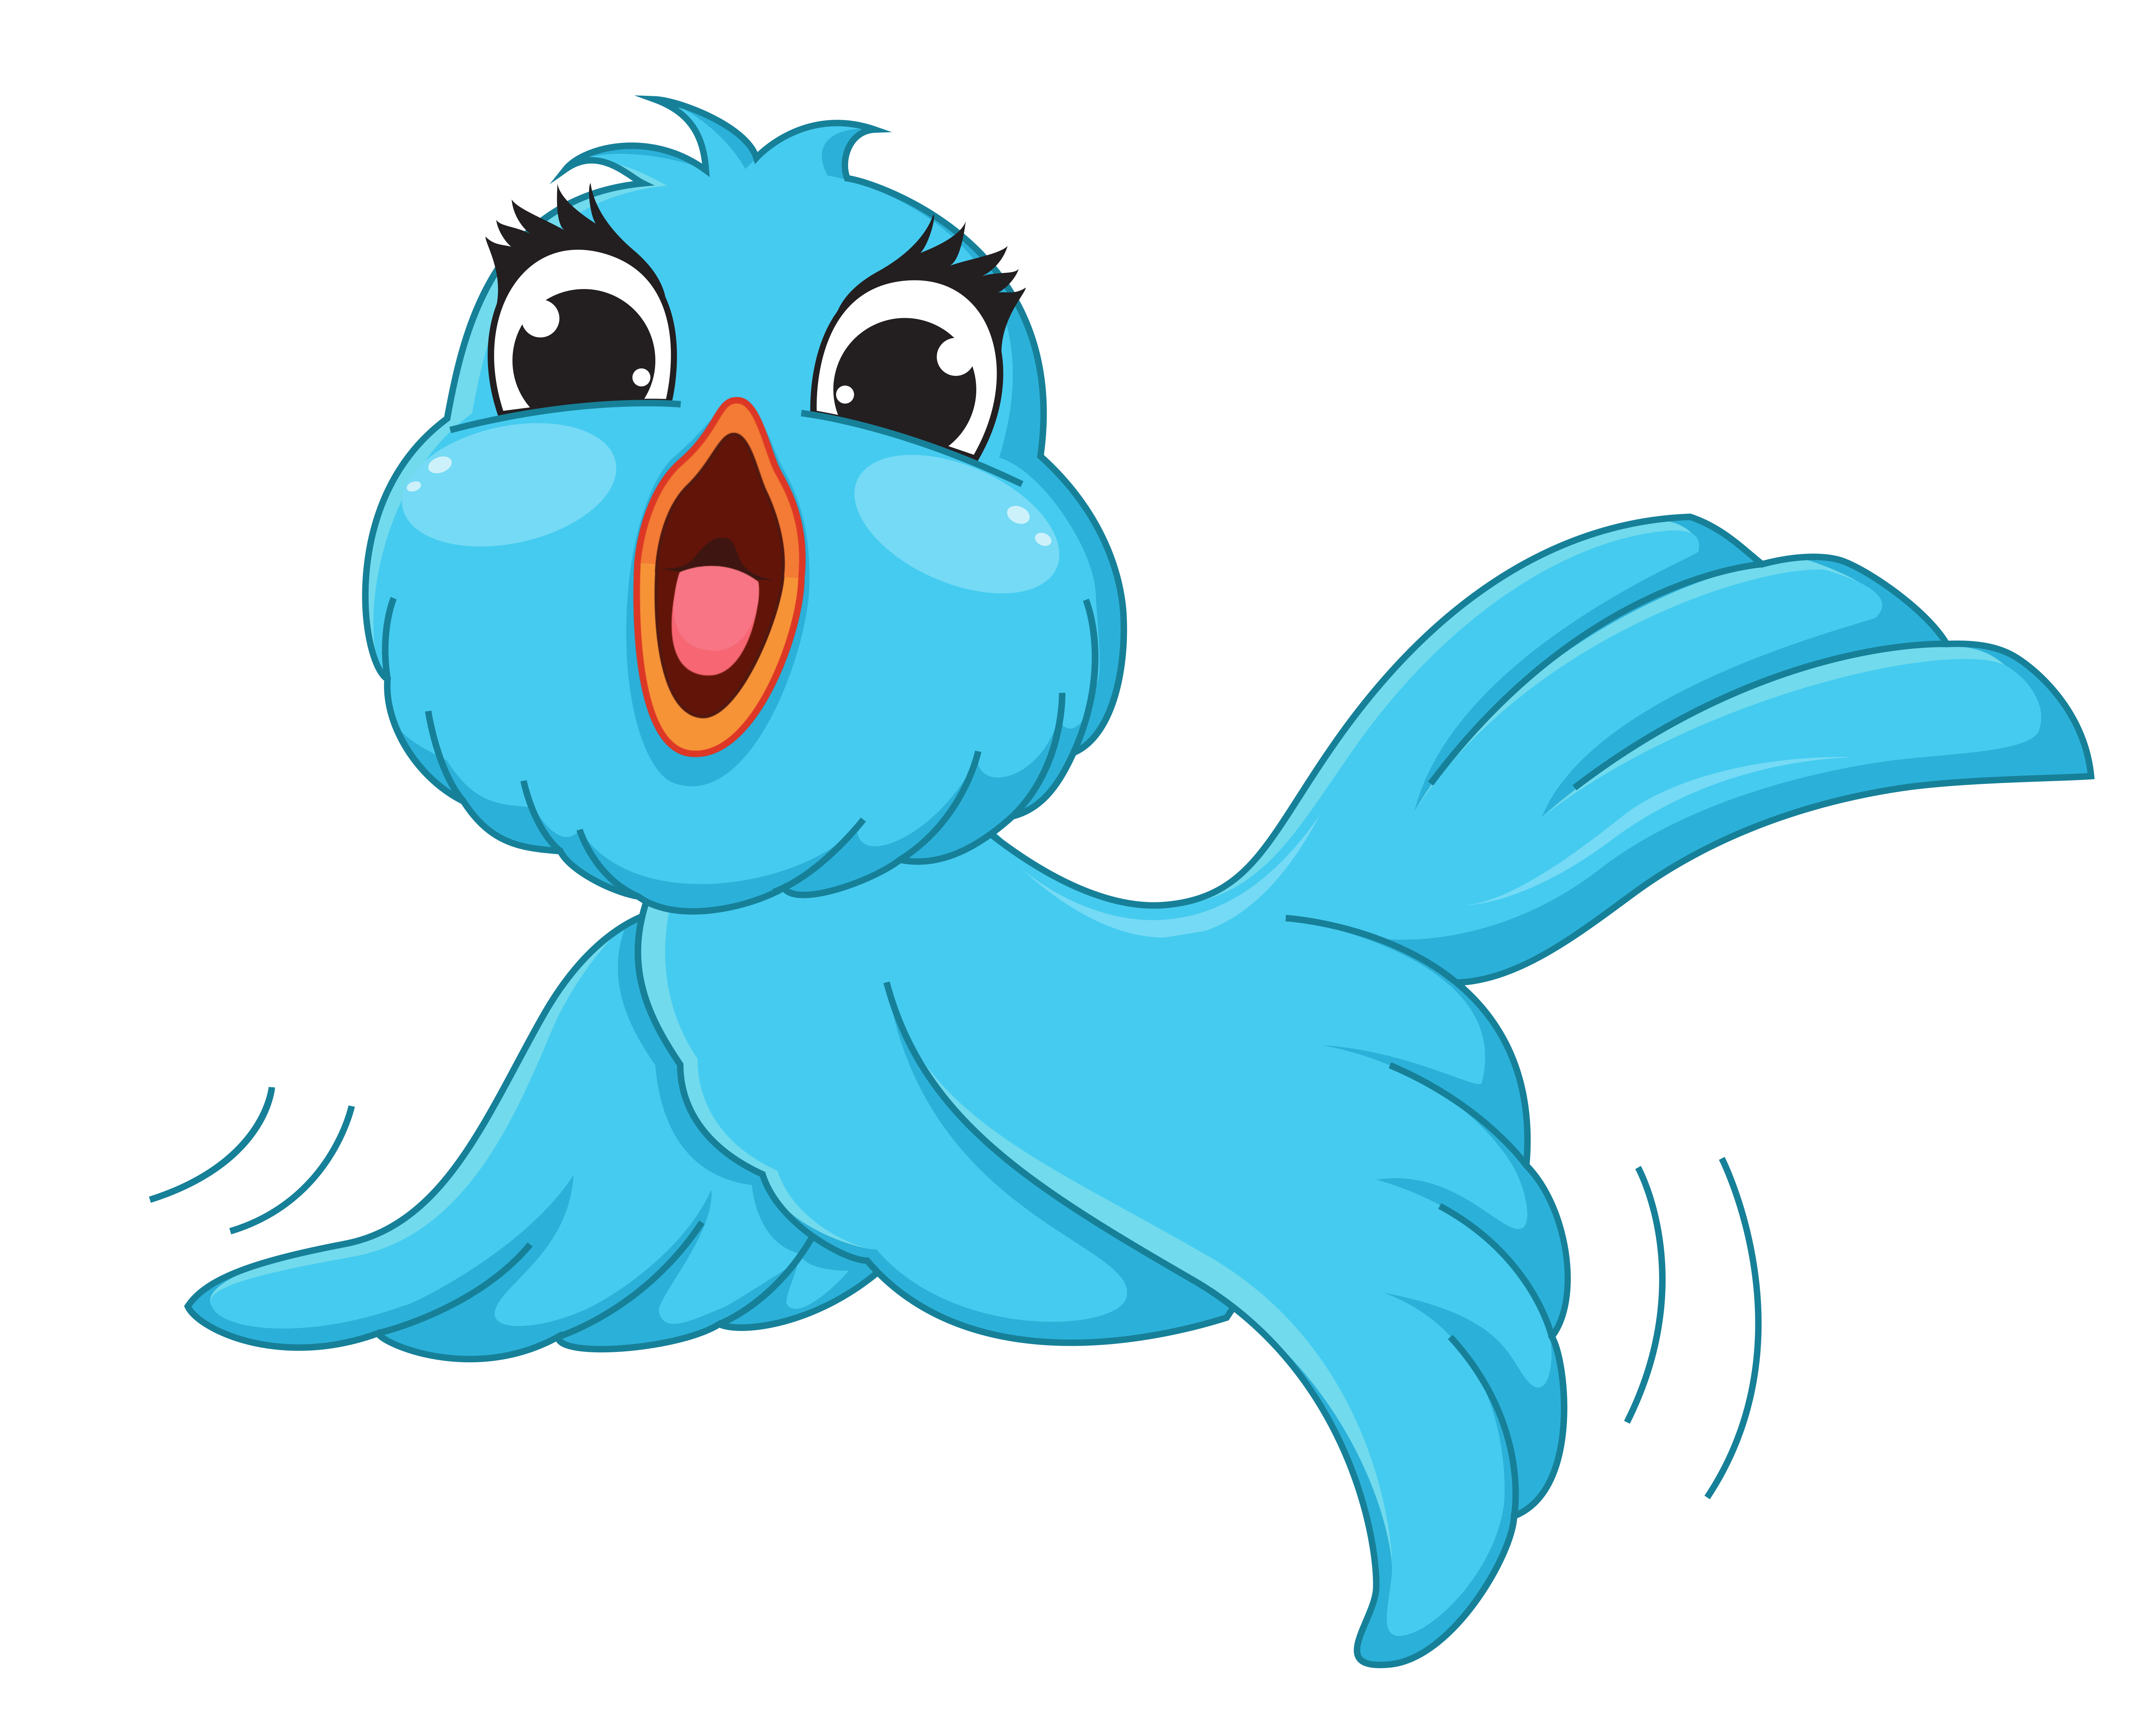 Bird clip art transparent background. Blue png cartoon picture